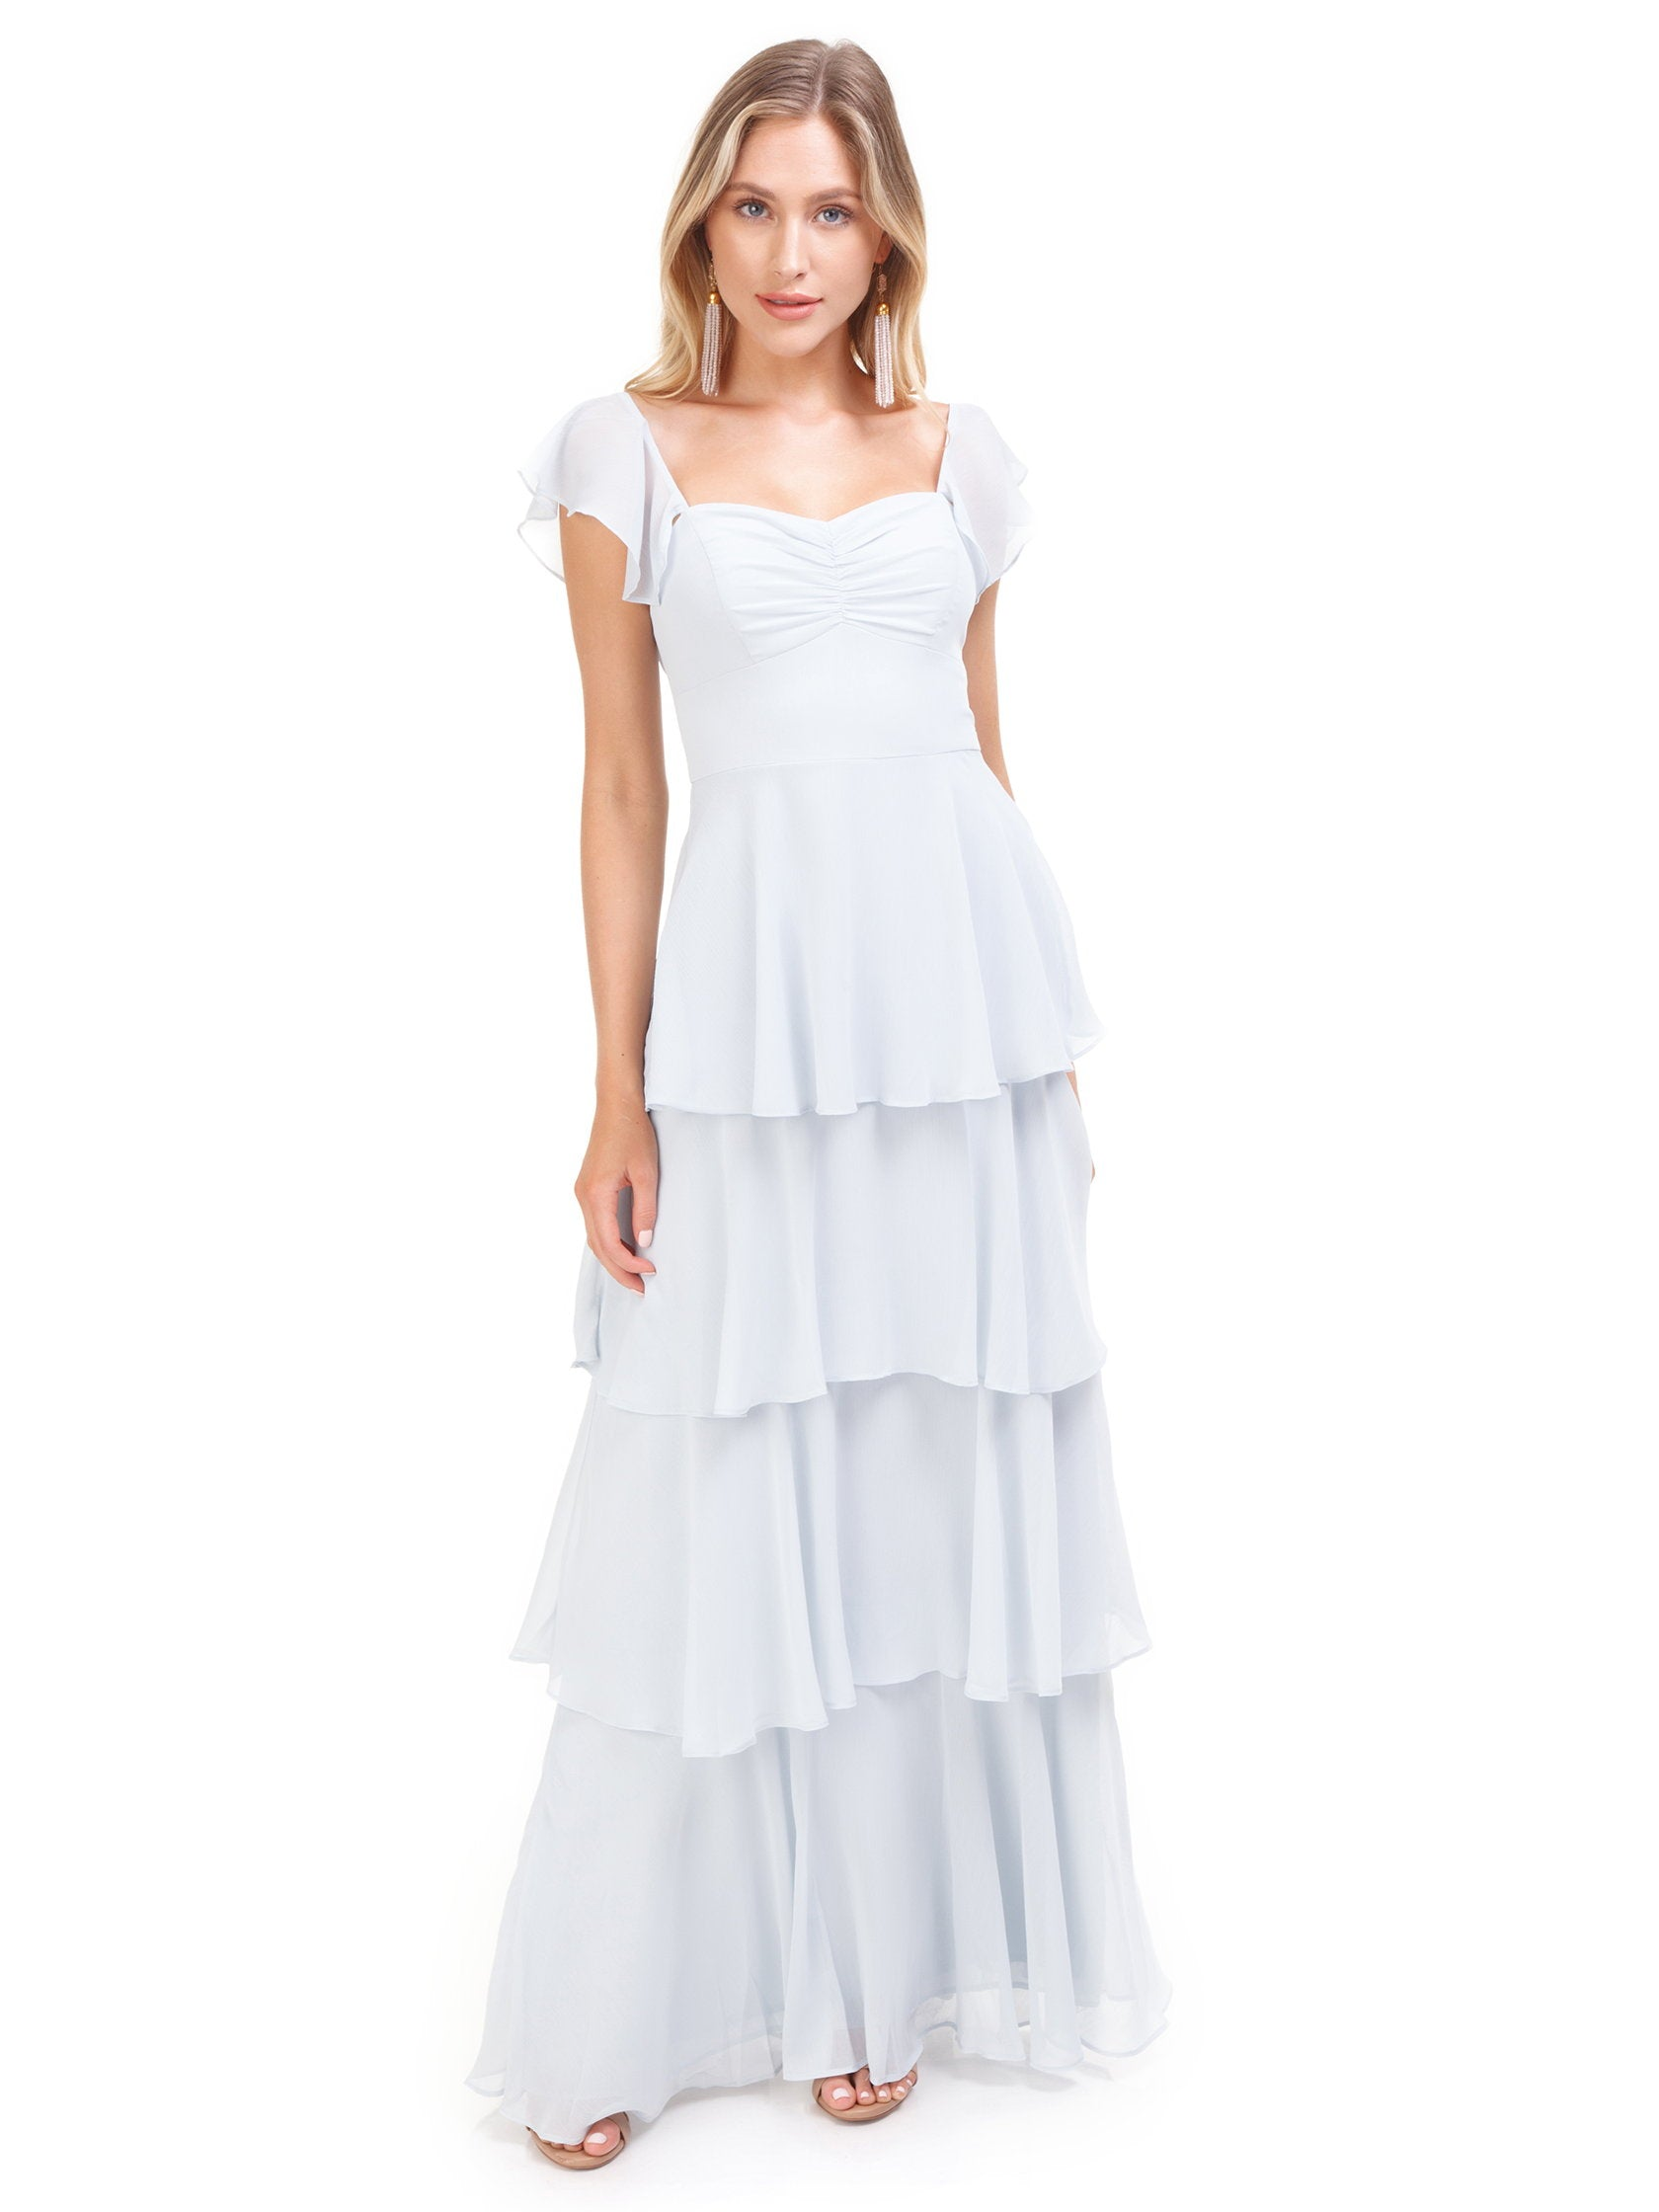 bfcc2d7669 Women outfit in a dress rental from WAYF called Abby Off Shoulder Tiered  Maxi Dress